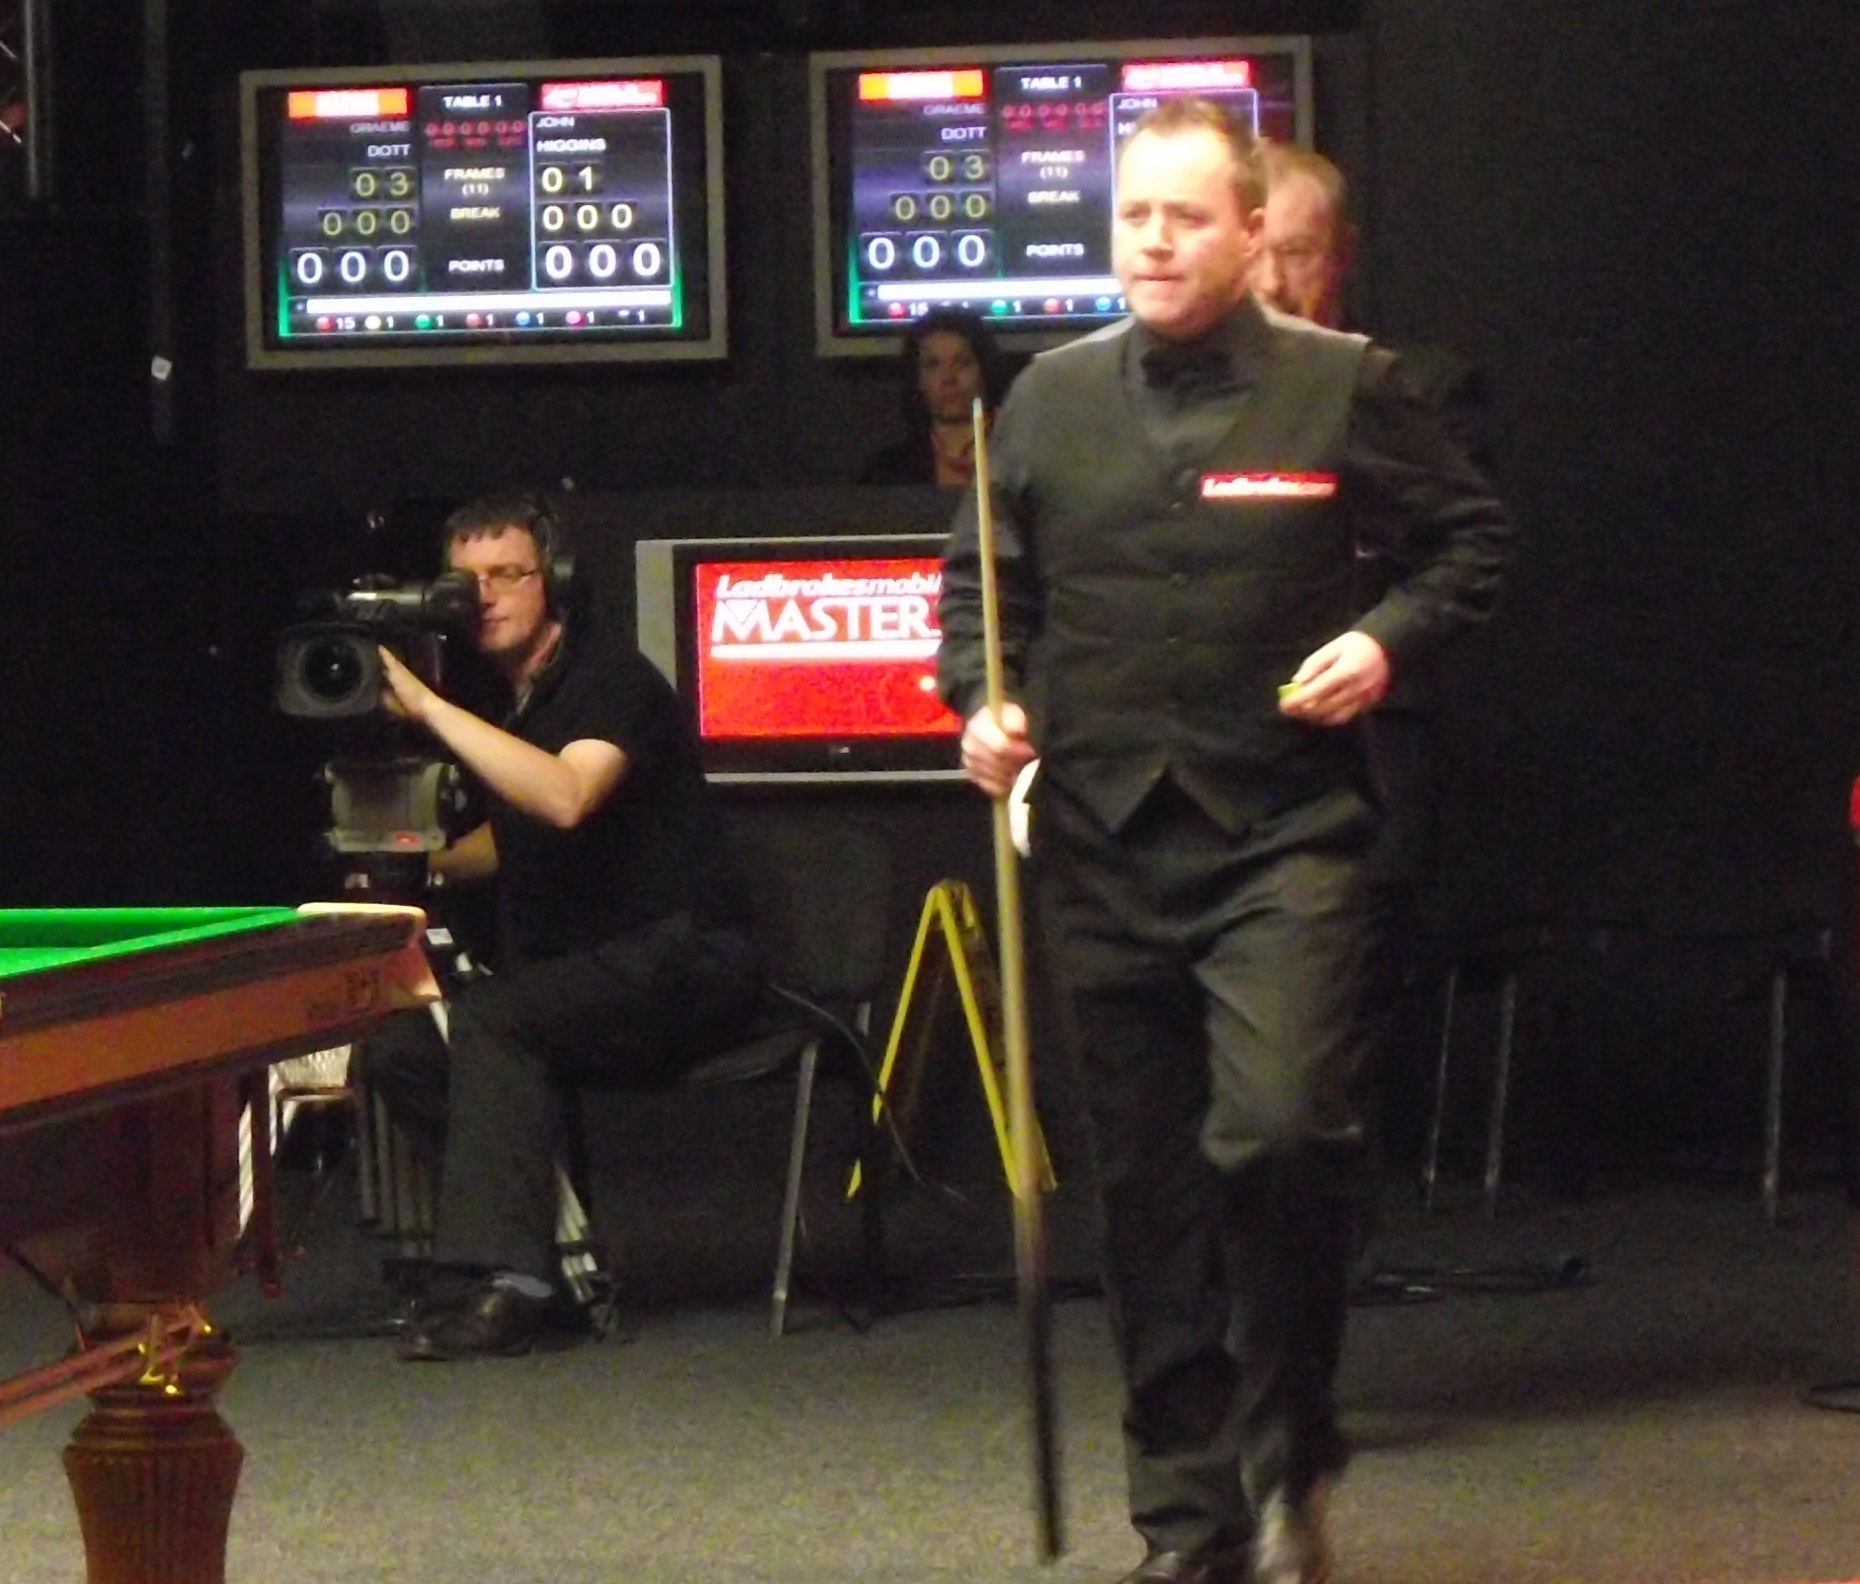 John Higgins at the Masters